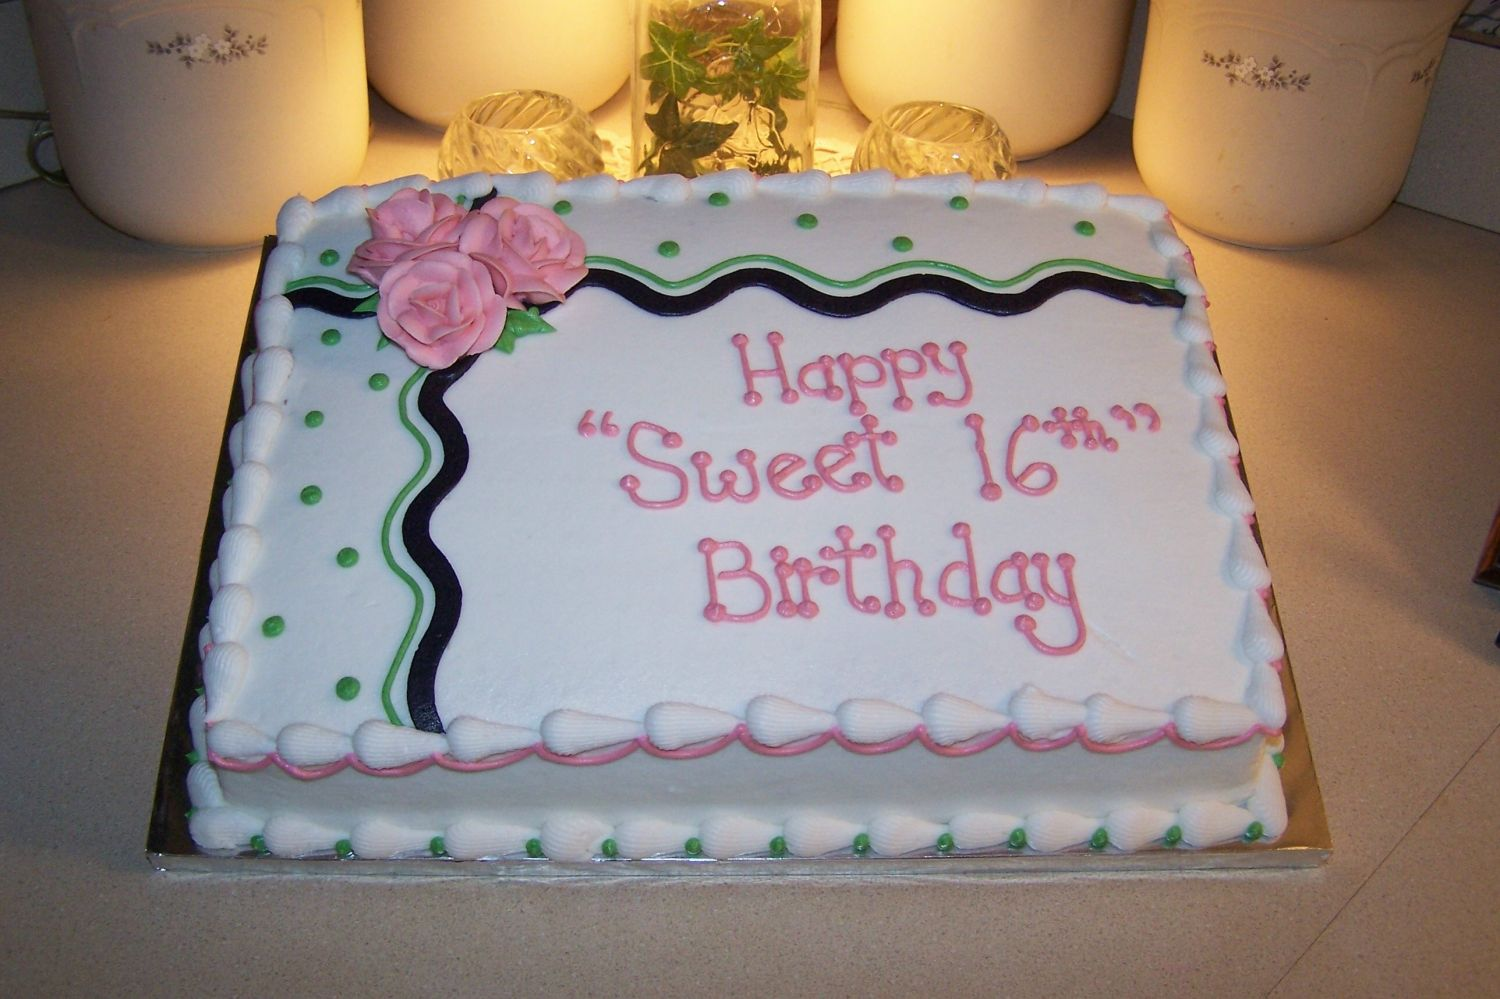 decorating a sheet cake for birthday ; 3063870cae78906a81836140287573a4